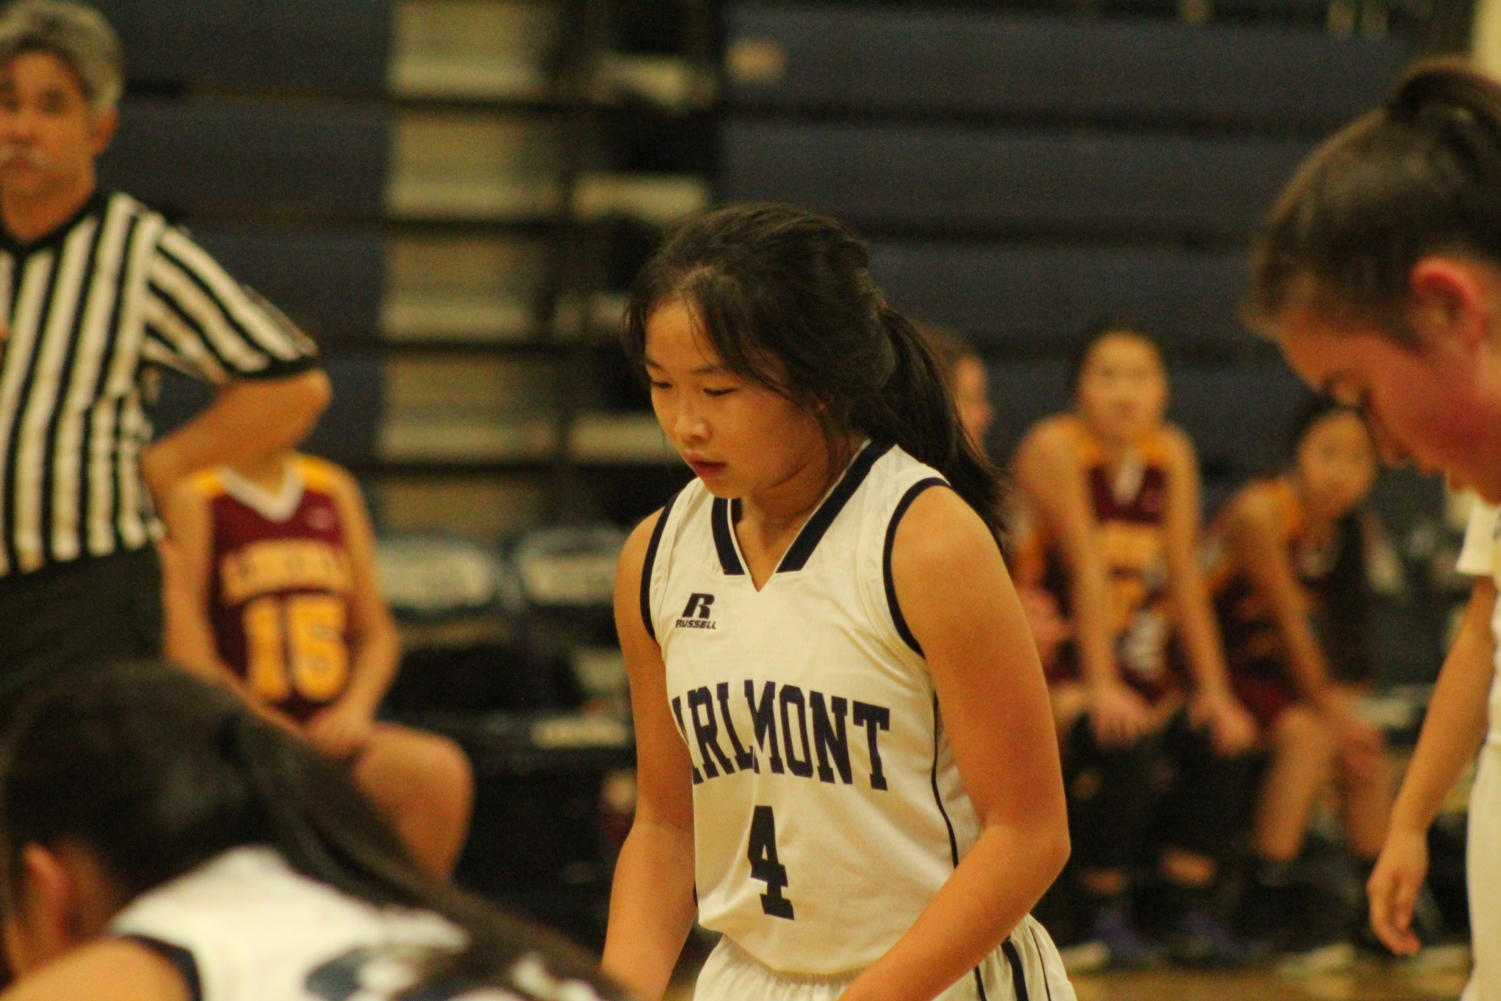 Morgan Yee, a junior, takes her time before shooting her free throw.